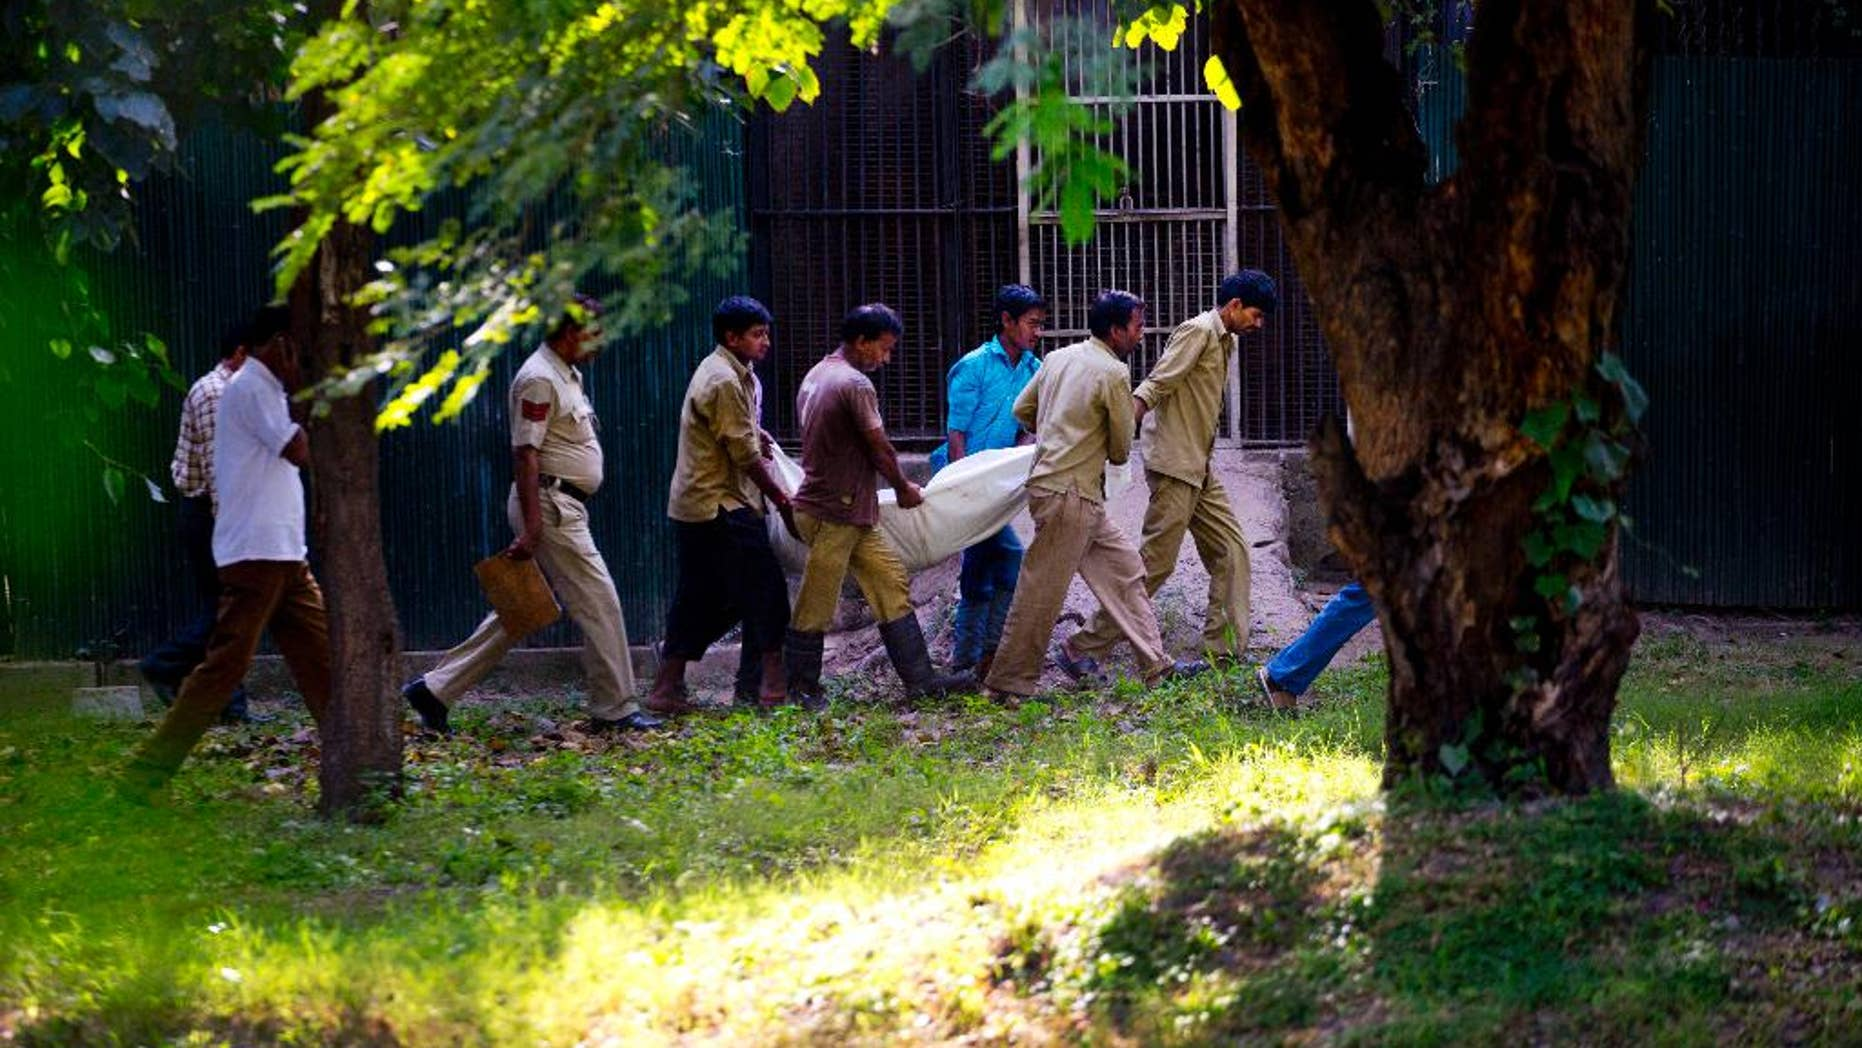 Sept. 23, 2014: Workers carry the body of a man who was killed by a white tiger past its cage at the zoo in New Delhi, India. The white tiger killed the man who climbed over a fence and jumped into the animal's enclosure Tuesday, a spokesman said.